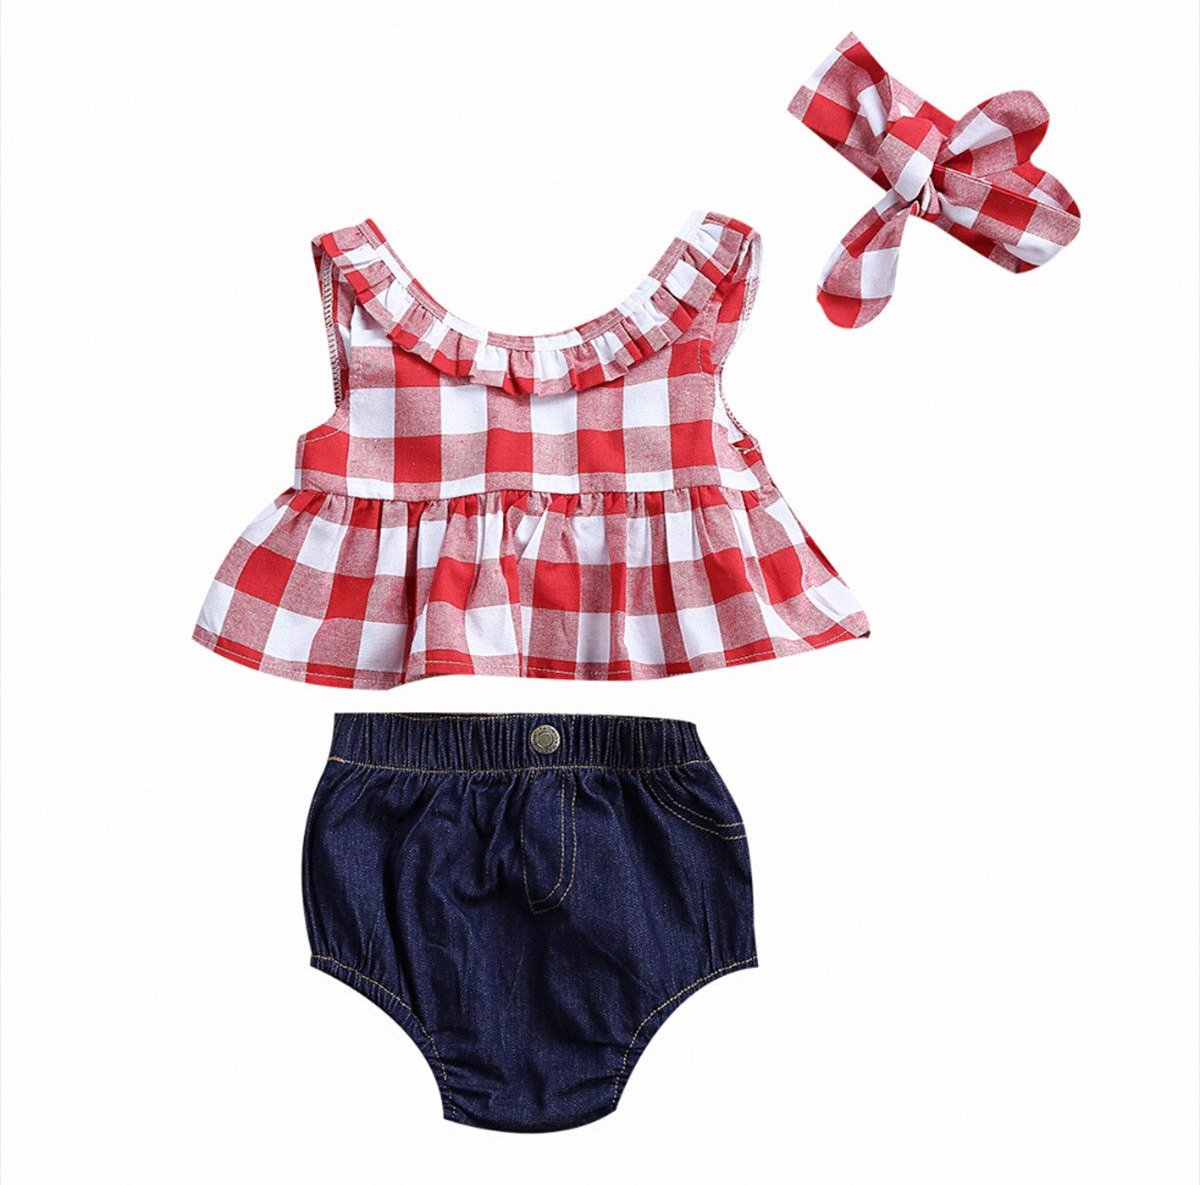 Gingham skirted top w headband and denim shorts, 3 Pc set